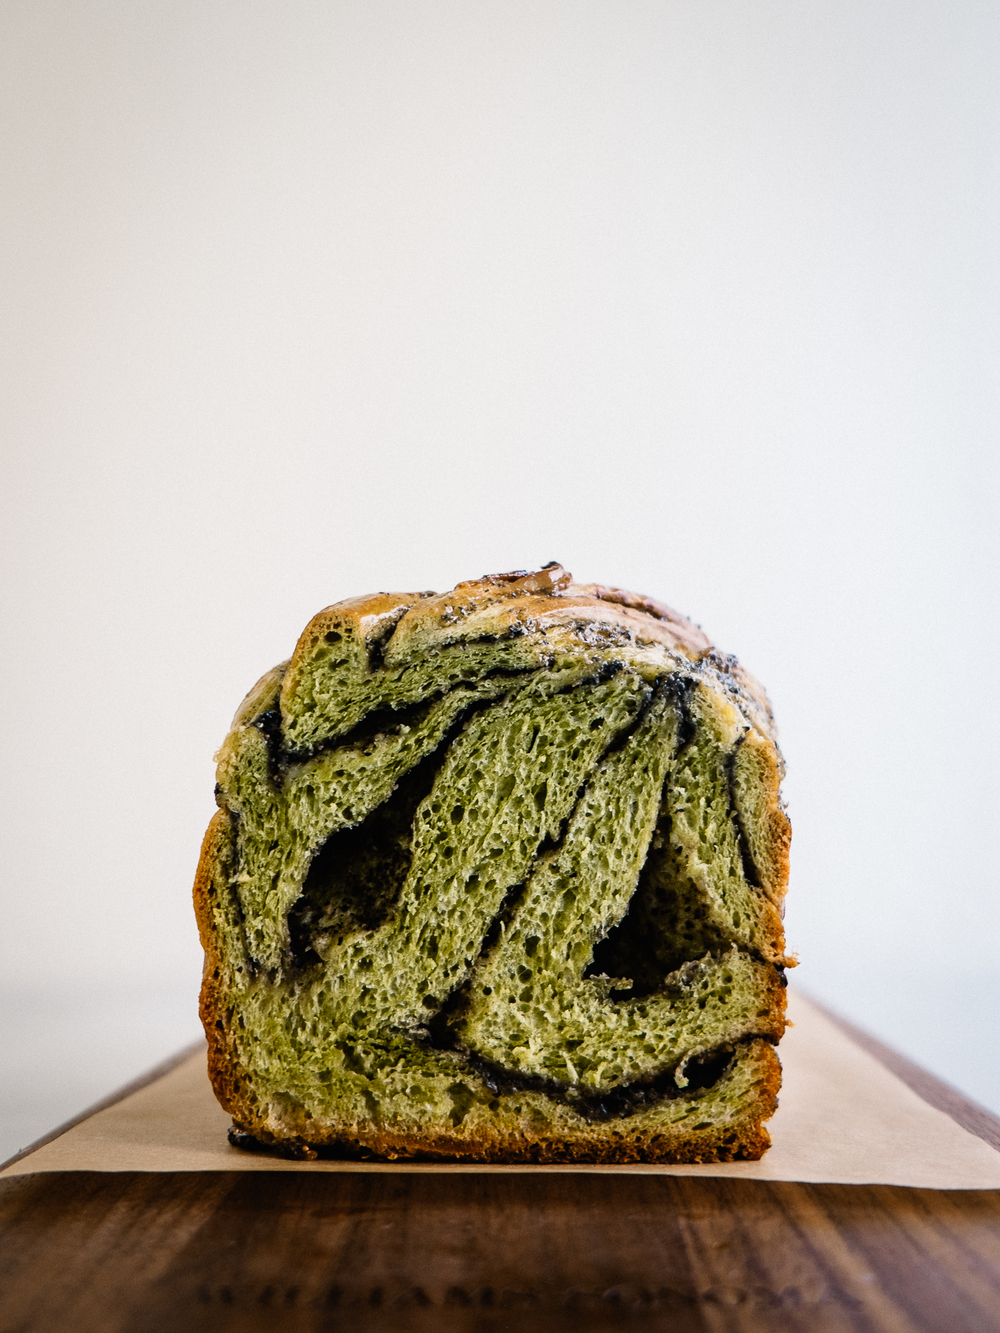 Match Green Tea Butter Cake